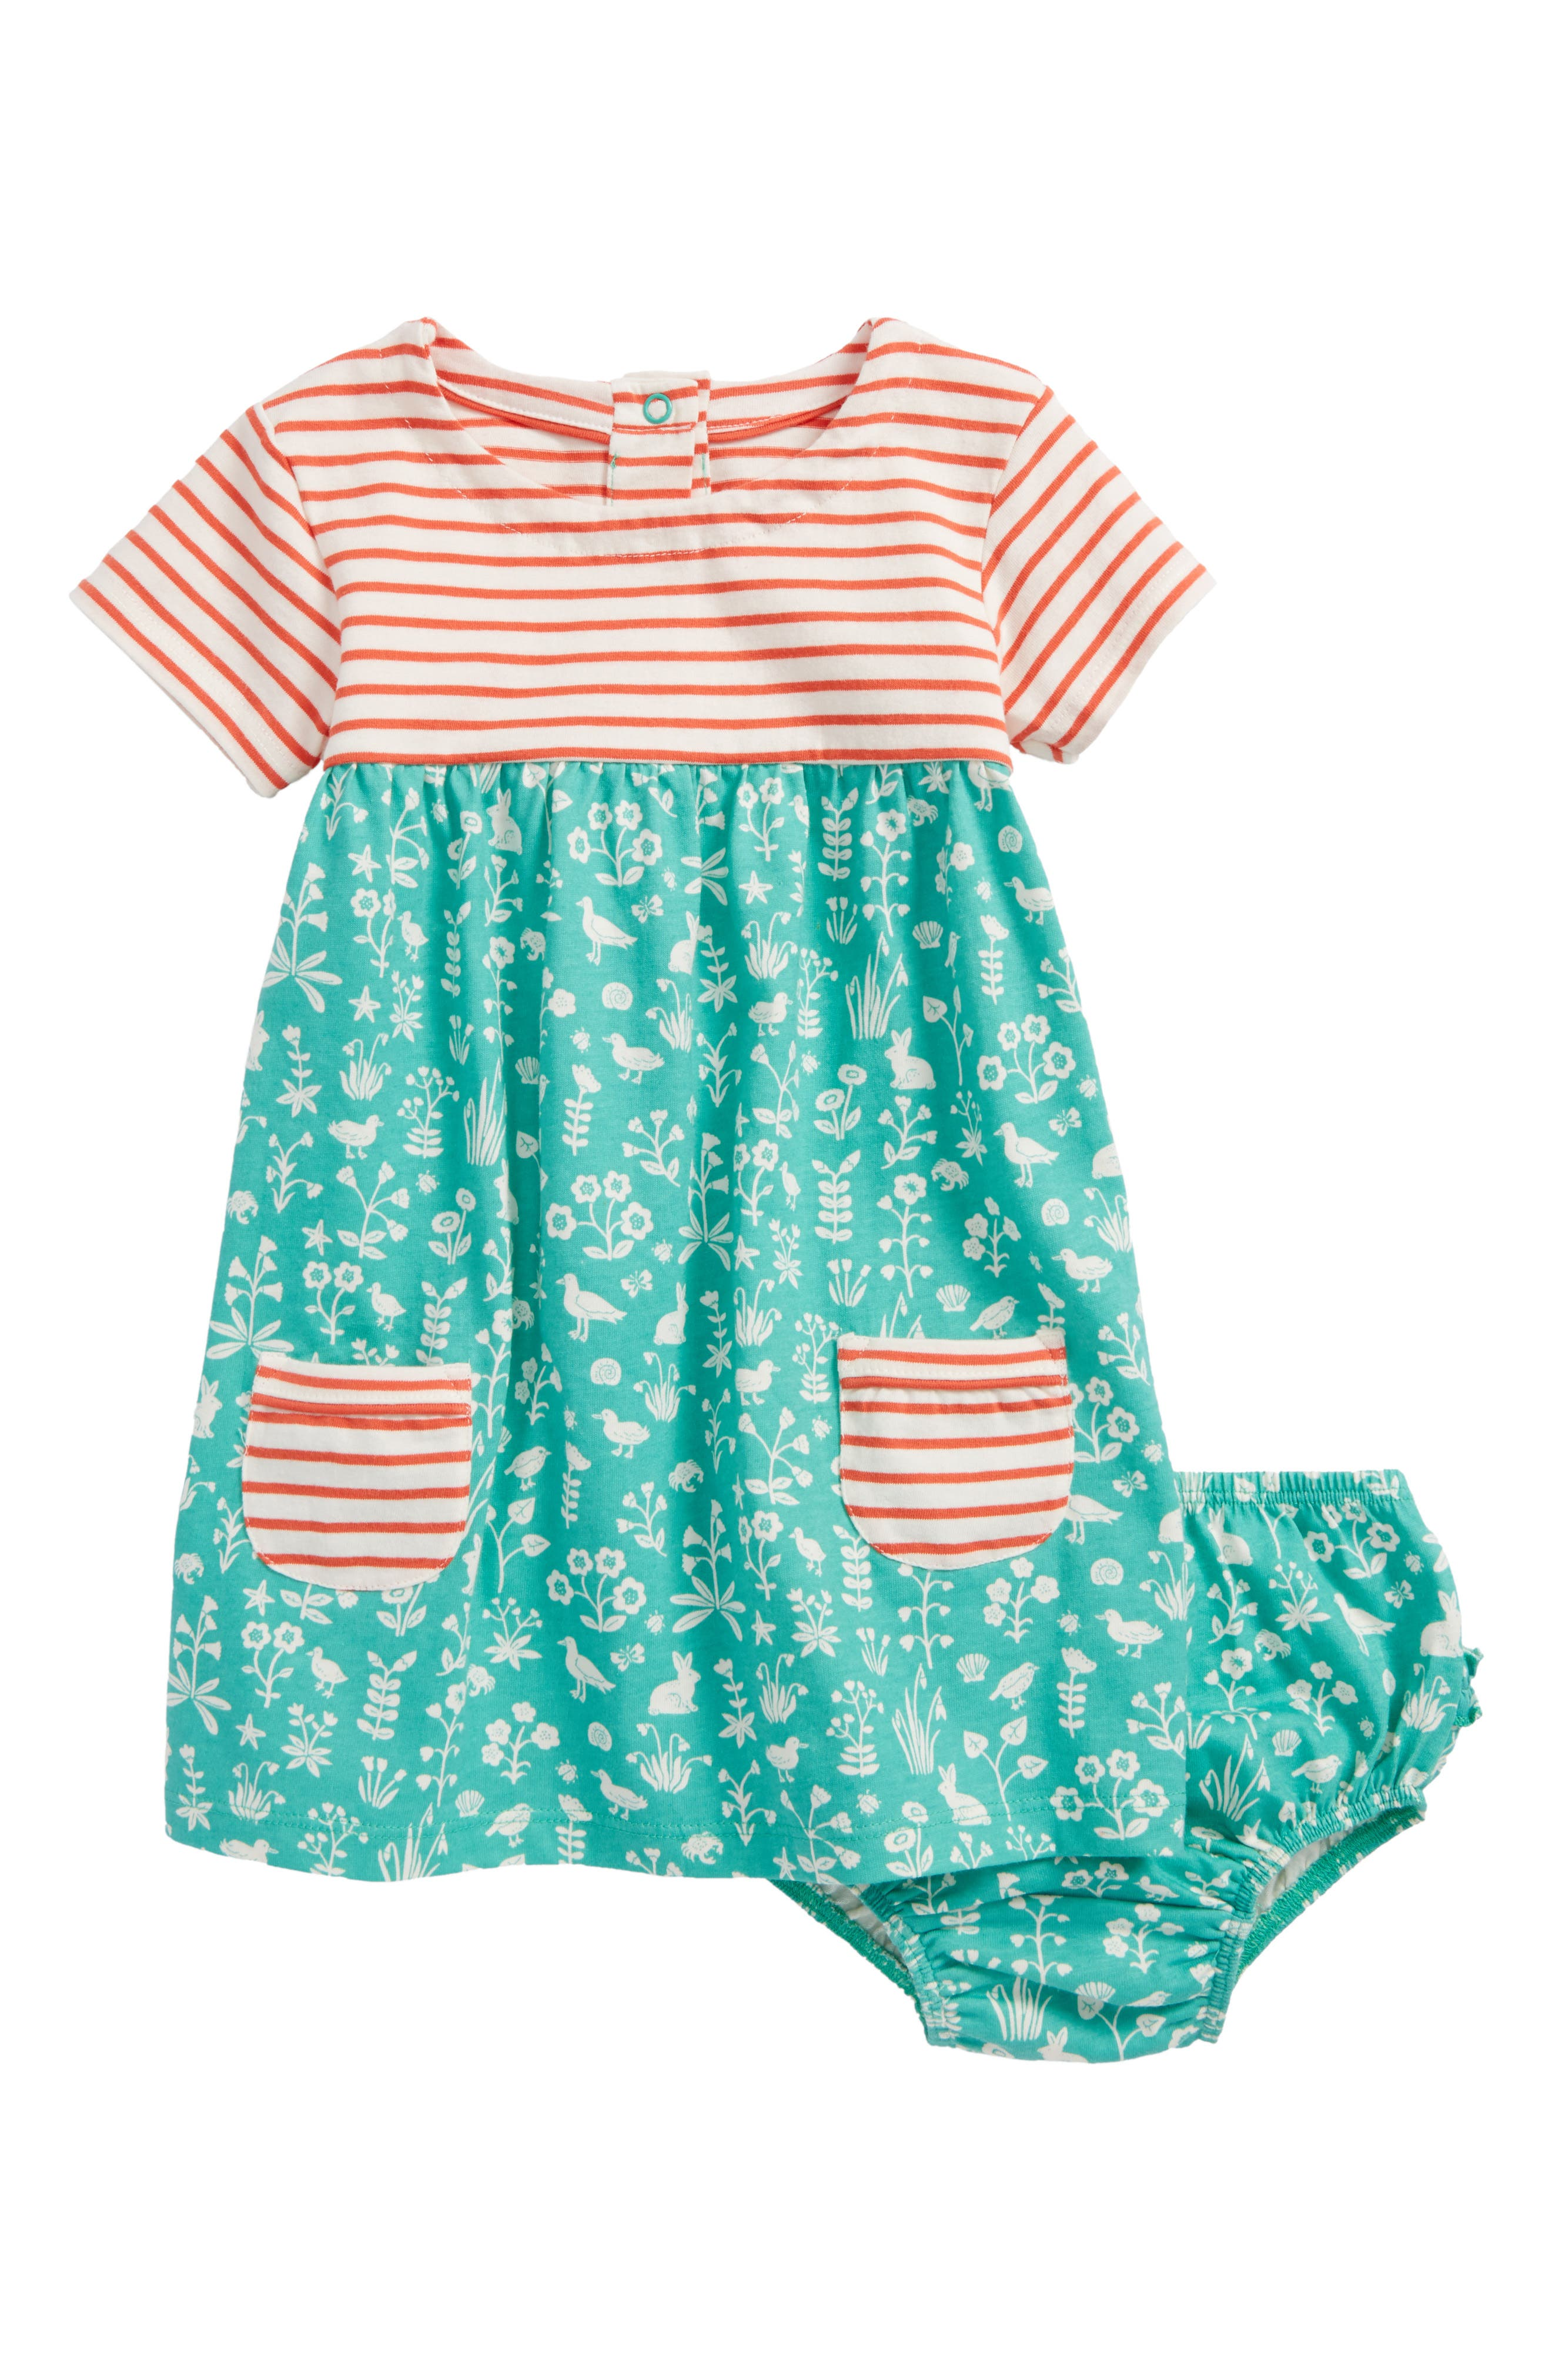 Hotchpotch Jersey Dress,                             Main thumbnail 1, color,                             Asparagus/ Coastal